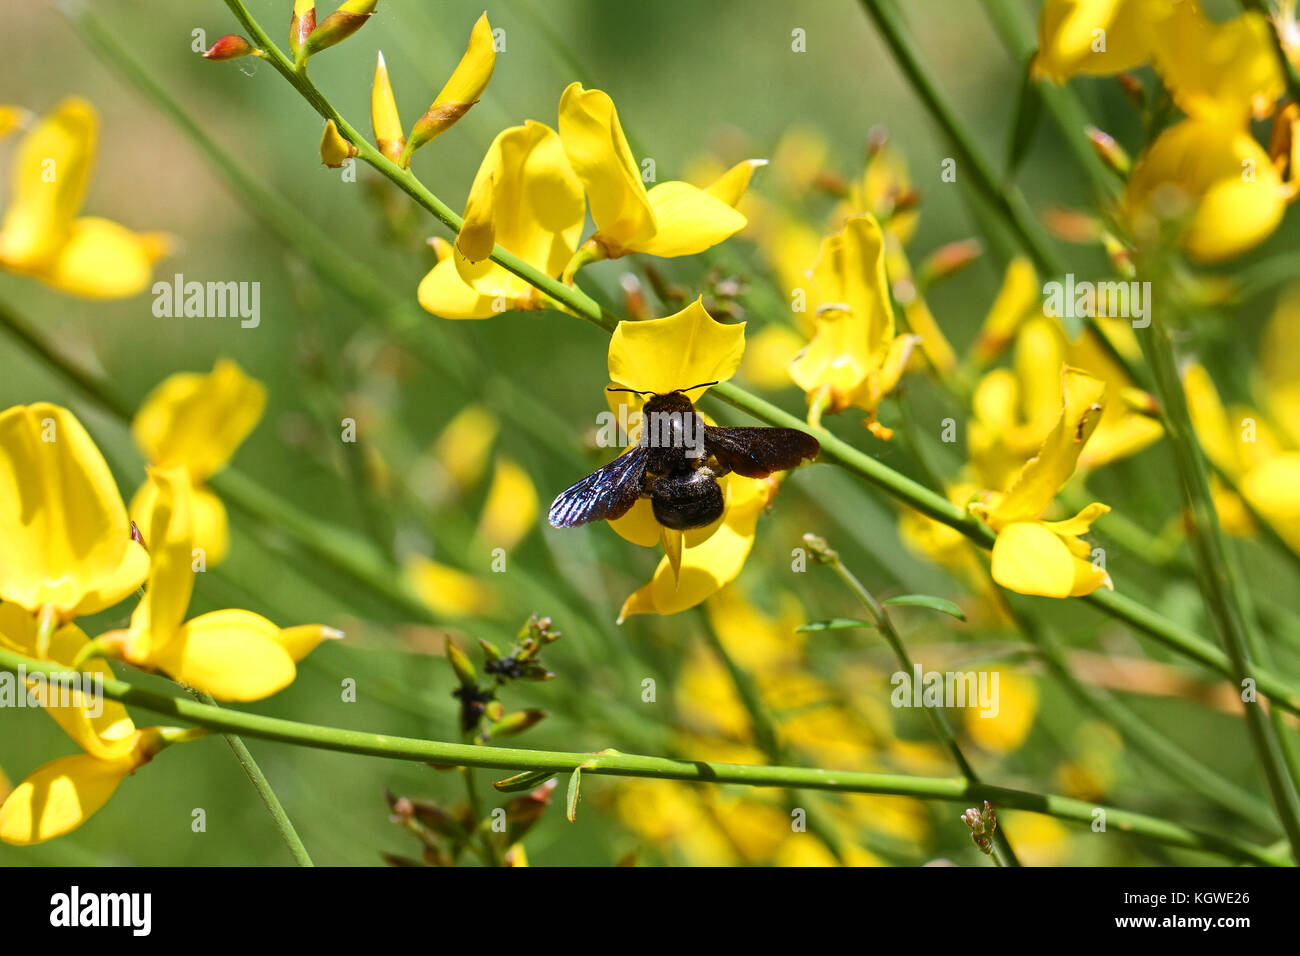 Carpenter Bee Latin Name Xylocopa Violacea On Yellow Broom Or Stock